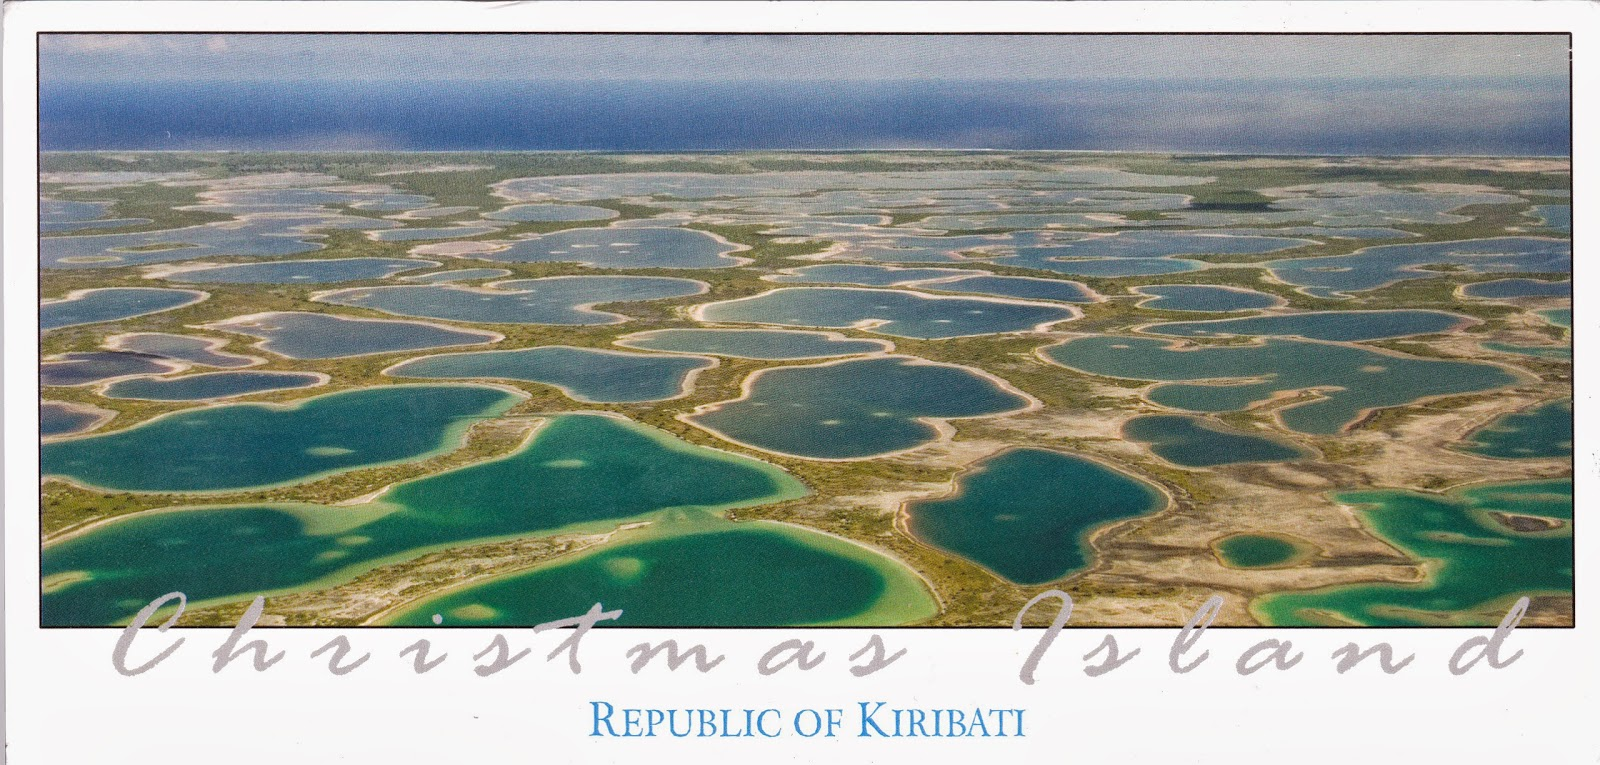 Wax On Daniel-san — Postcards: Kiribati